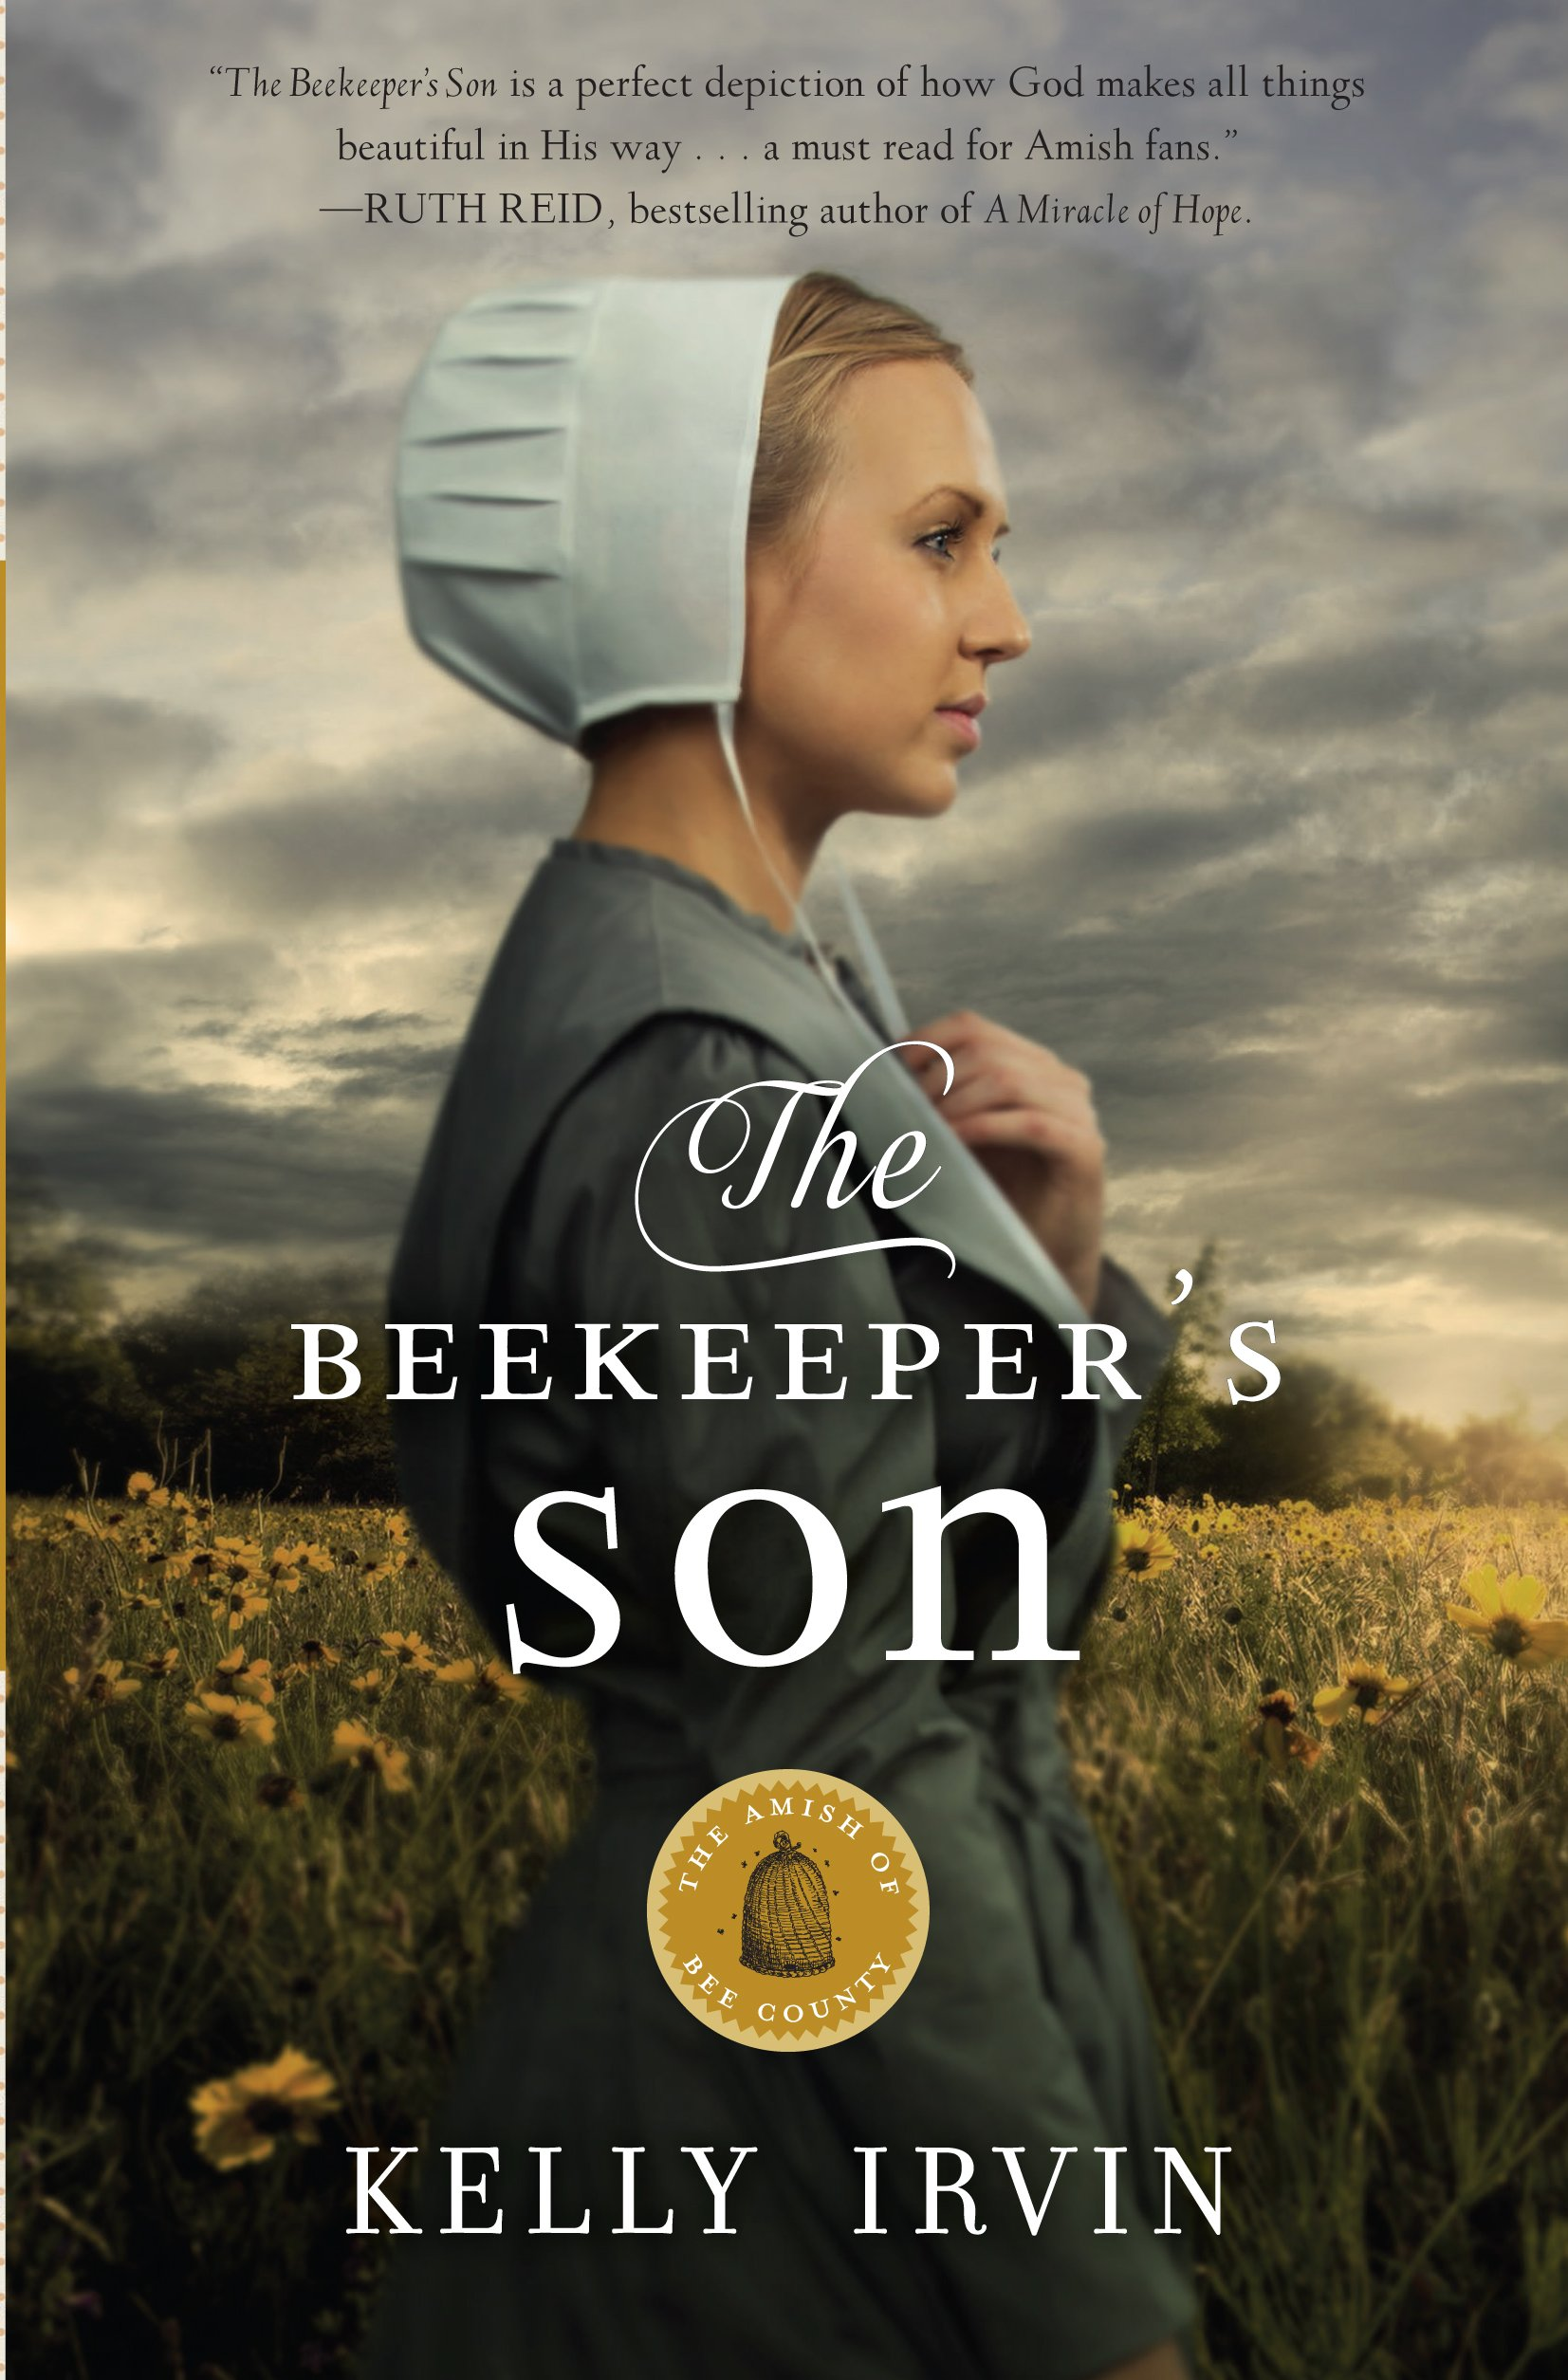 The Beekeeper's Son (Amish of Bee County): Amazon.co.uk: Kelly Irvin:  9781410476425: Books